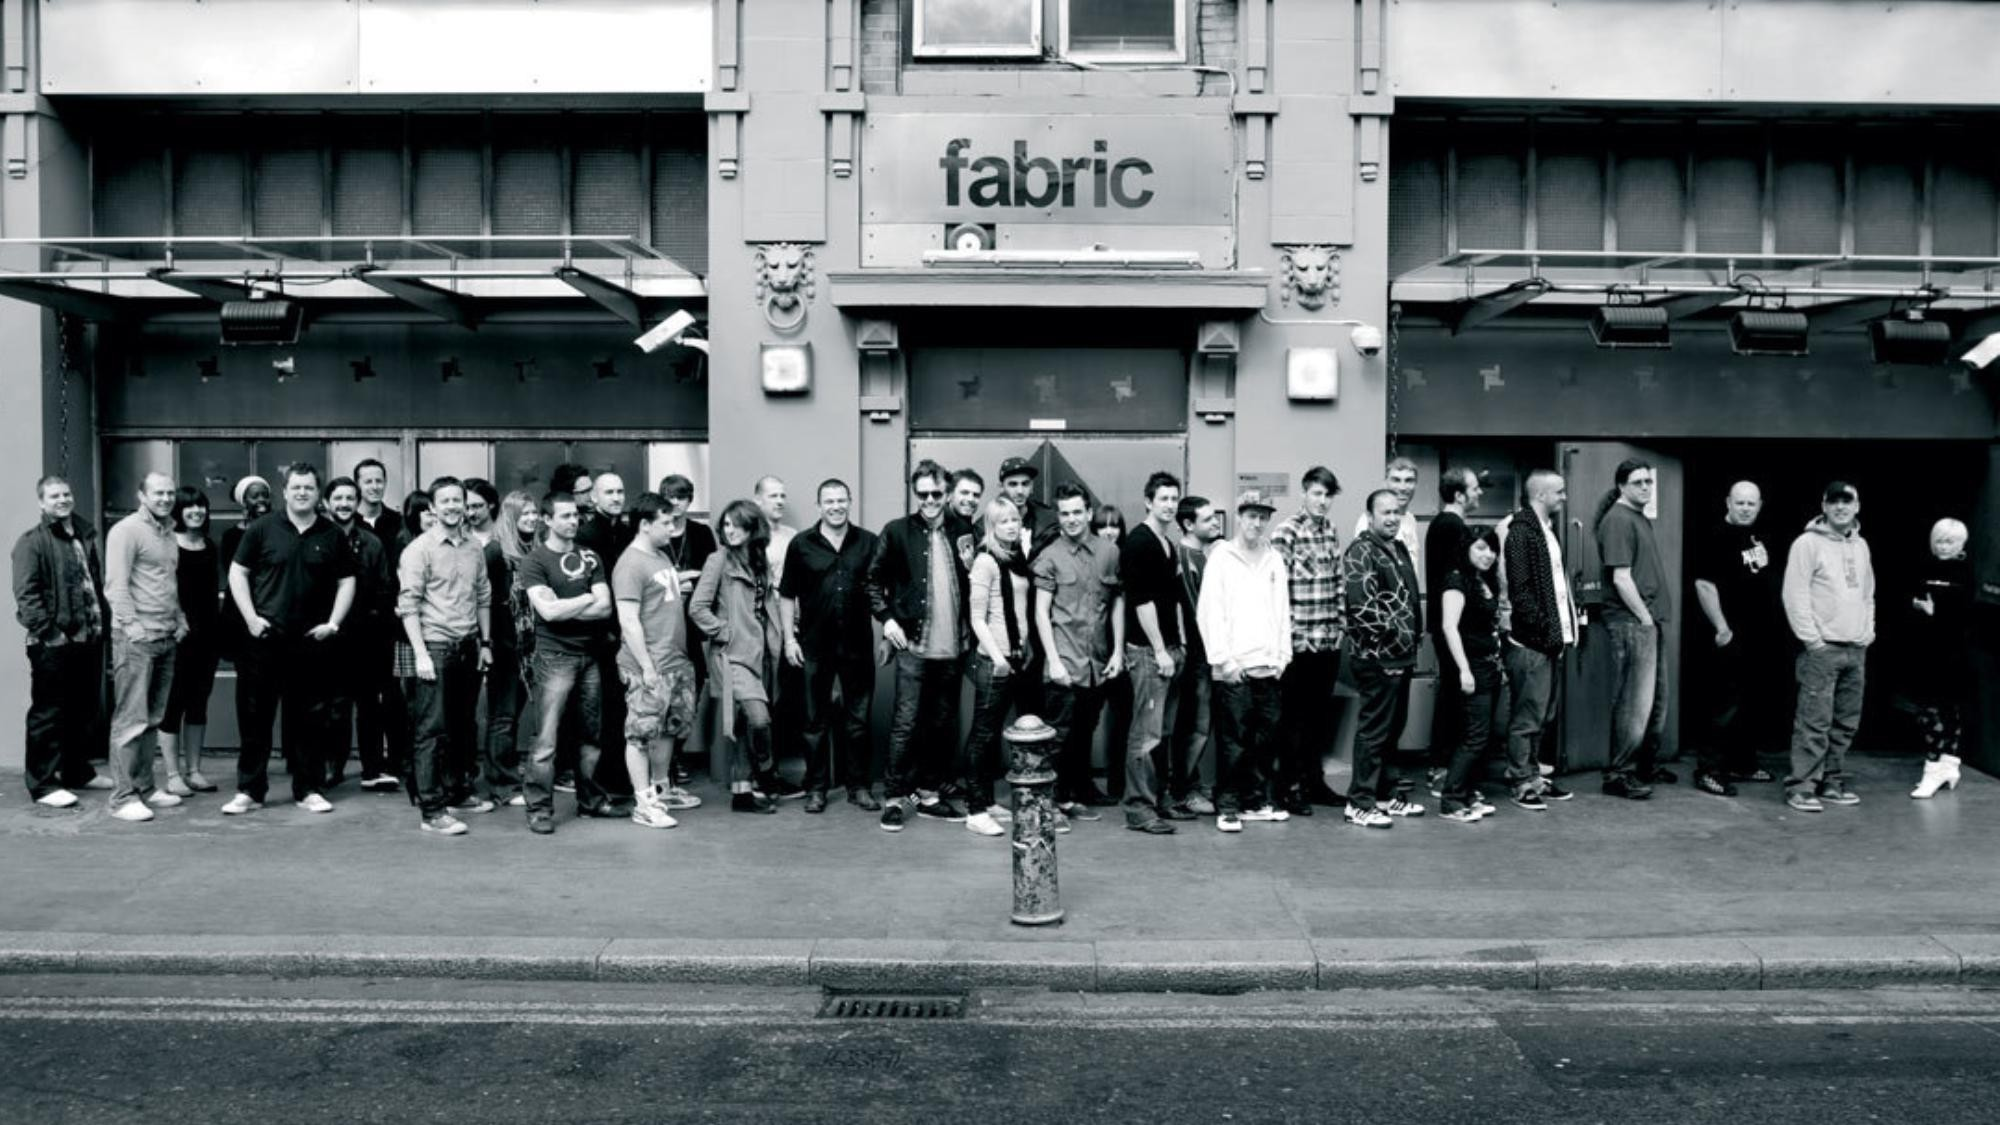 fabric to appeal against closure